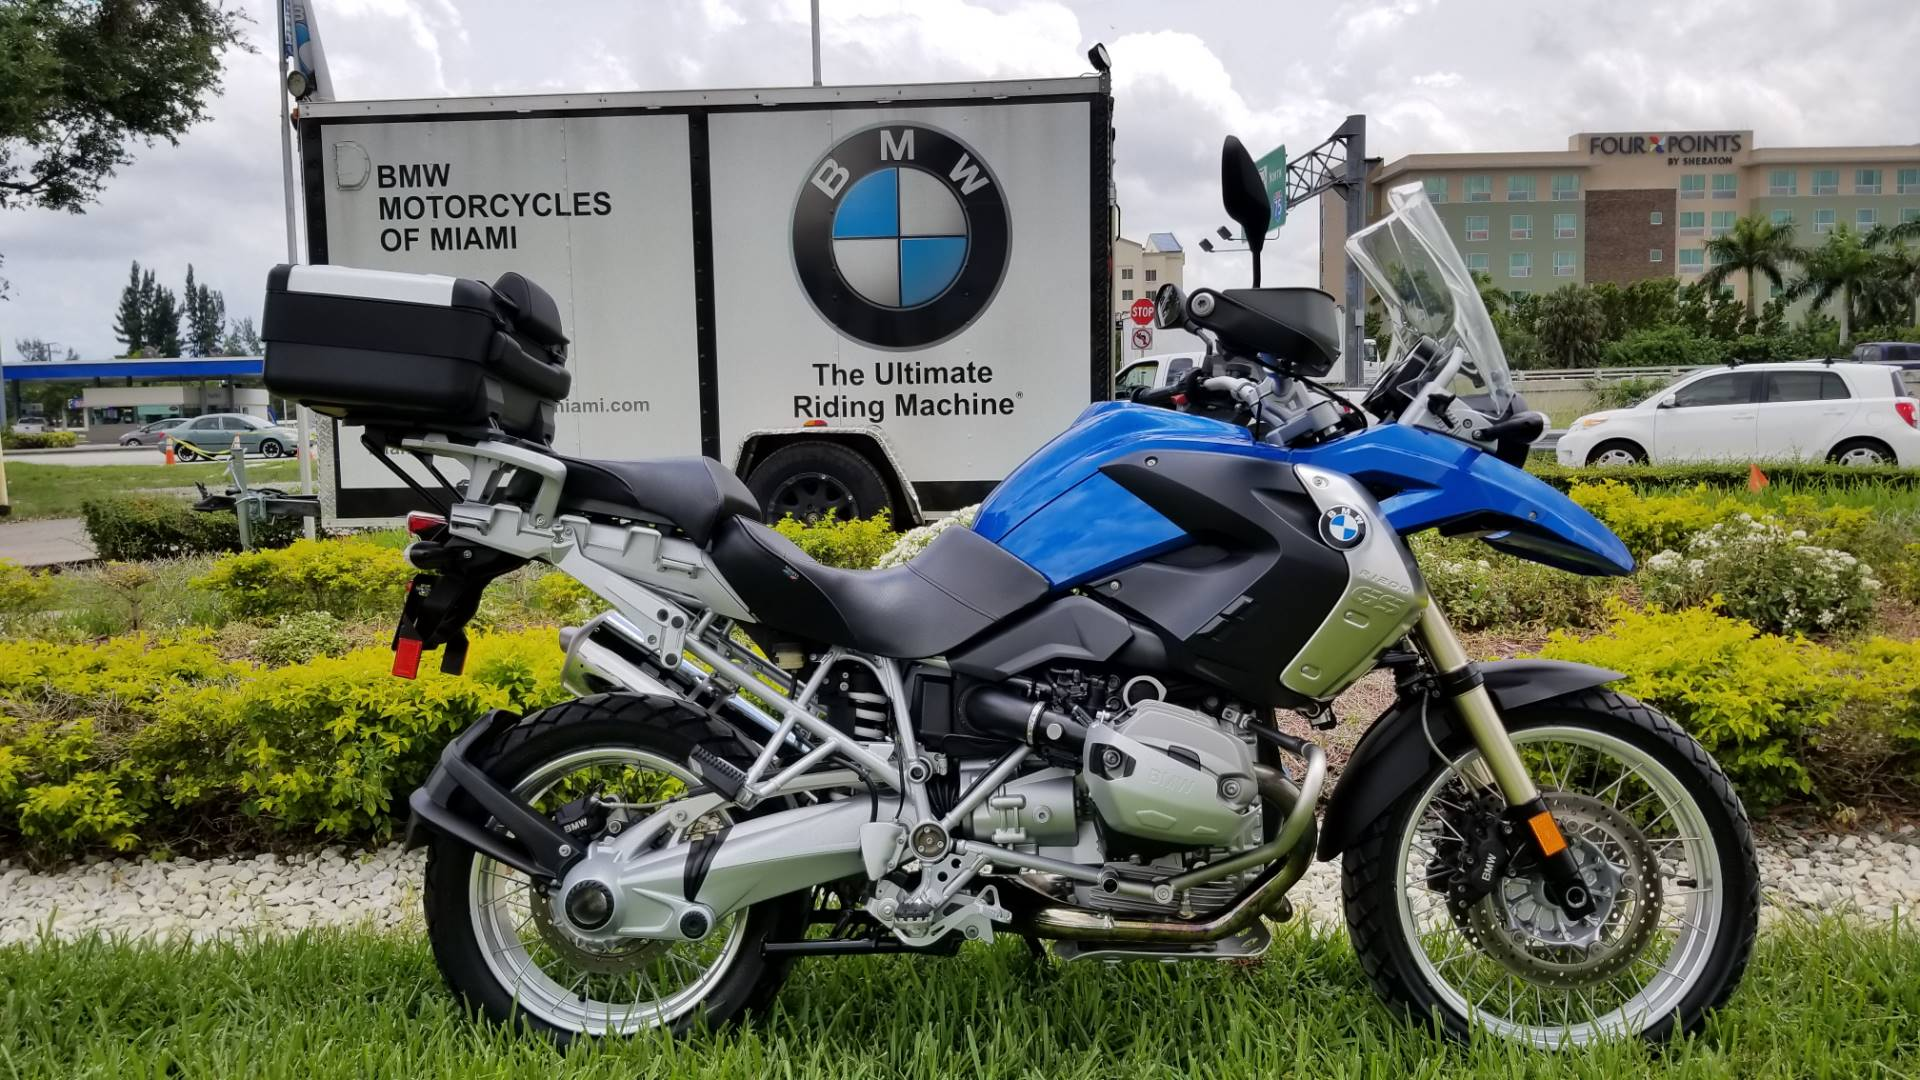 Used 2012 BMW R 1200 GS For Sale, BMW R 1200GS For Sale, BMW Motorcycle r1200GS, BMW R1200GS, BMW, GS, DUAL. - Photo 20